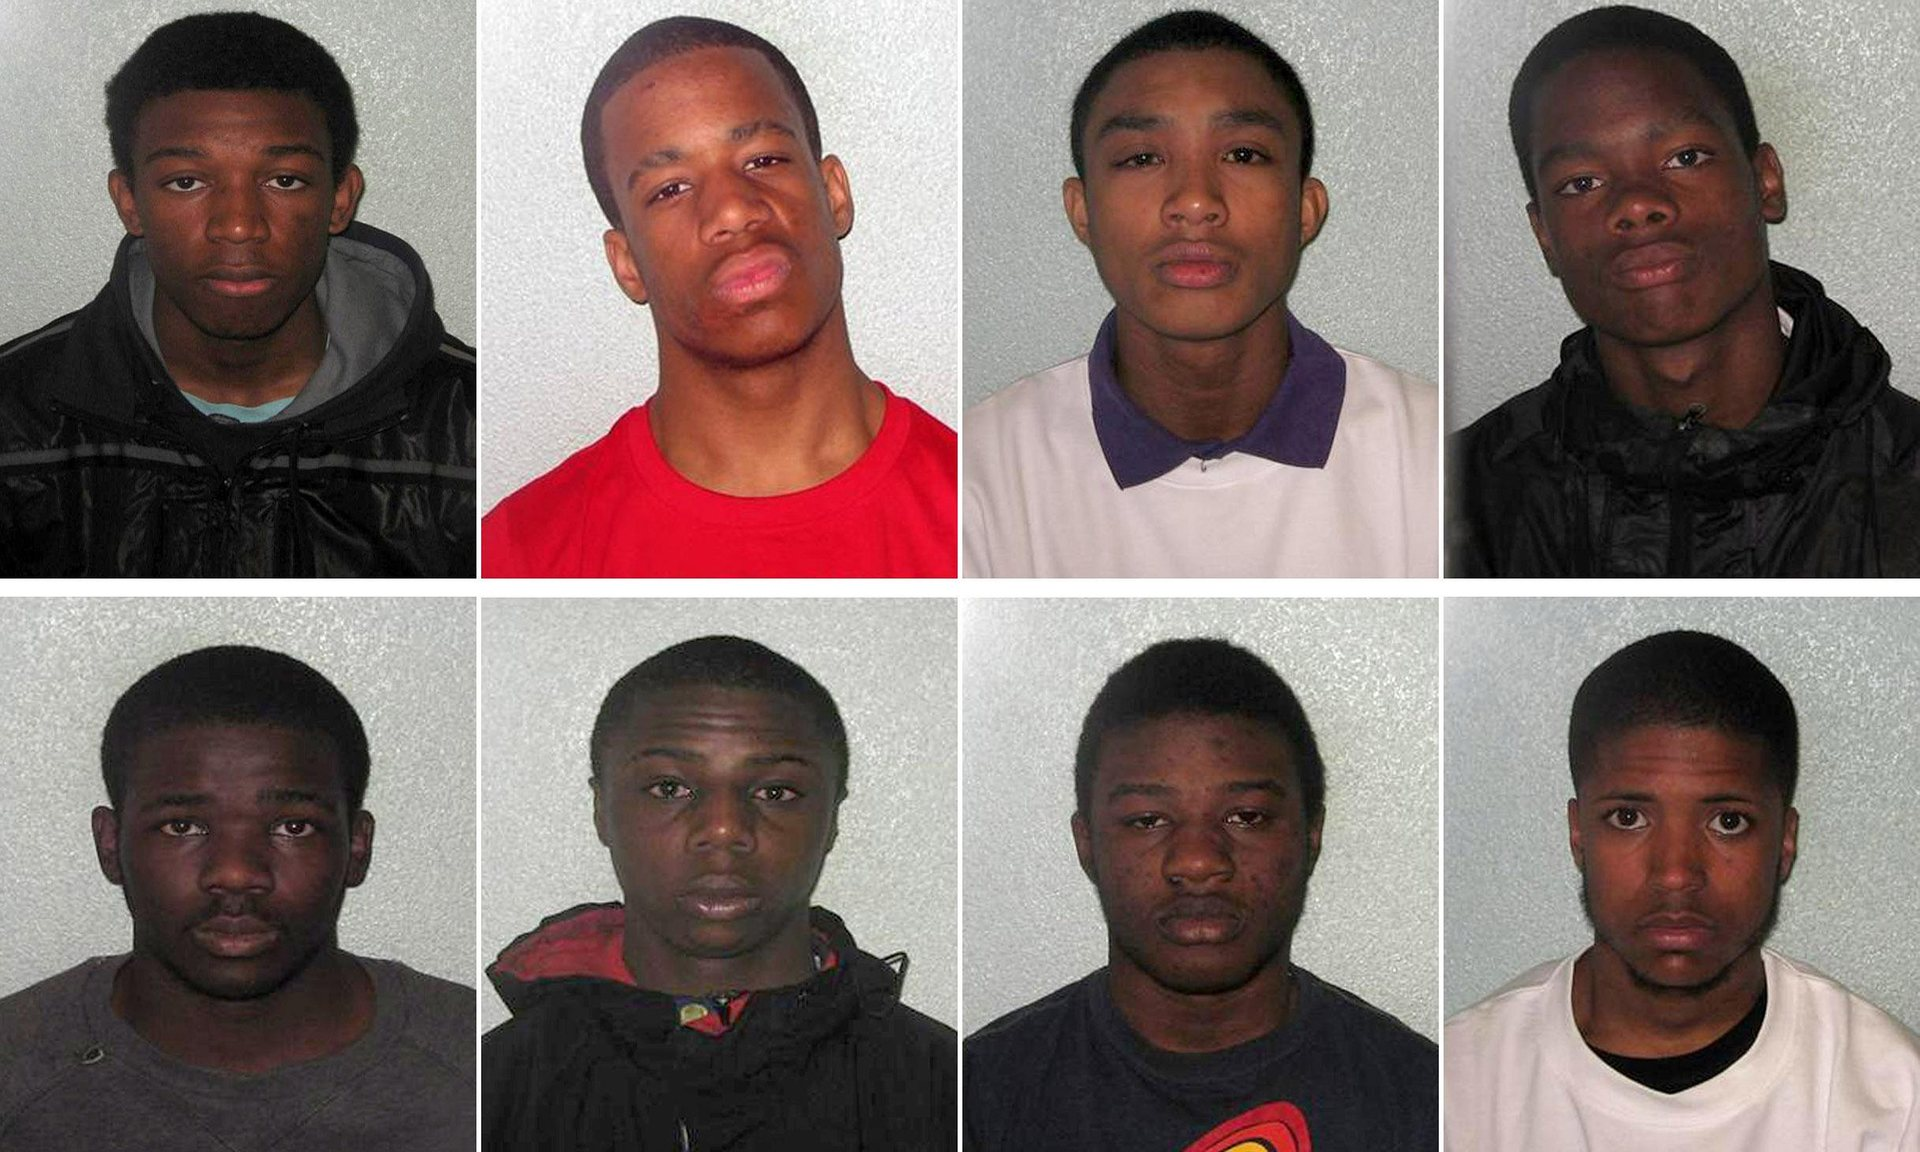 Top row (left to right): Dale Green, Lamarr Gordon, Joseph Appiah and Demar Brown. Bottom row (left to right) Terell Clement, Claude Gaha, Edward Conteh and Sheldon Gordon  (Pic: Metropolitan Police/PA)